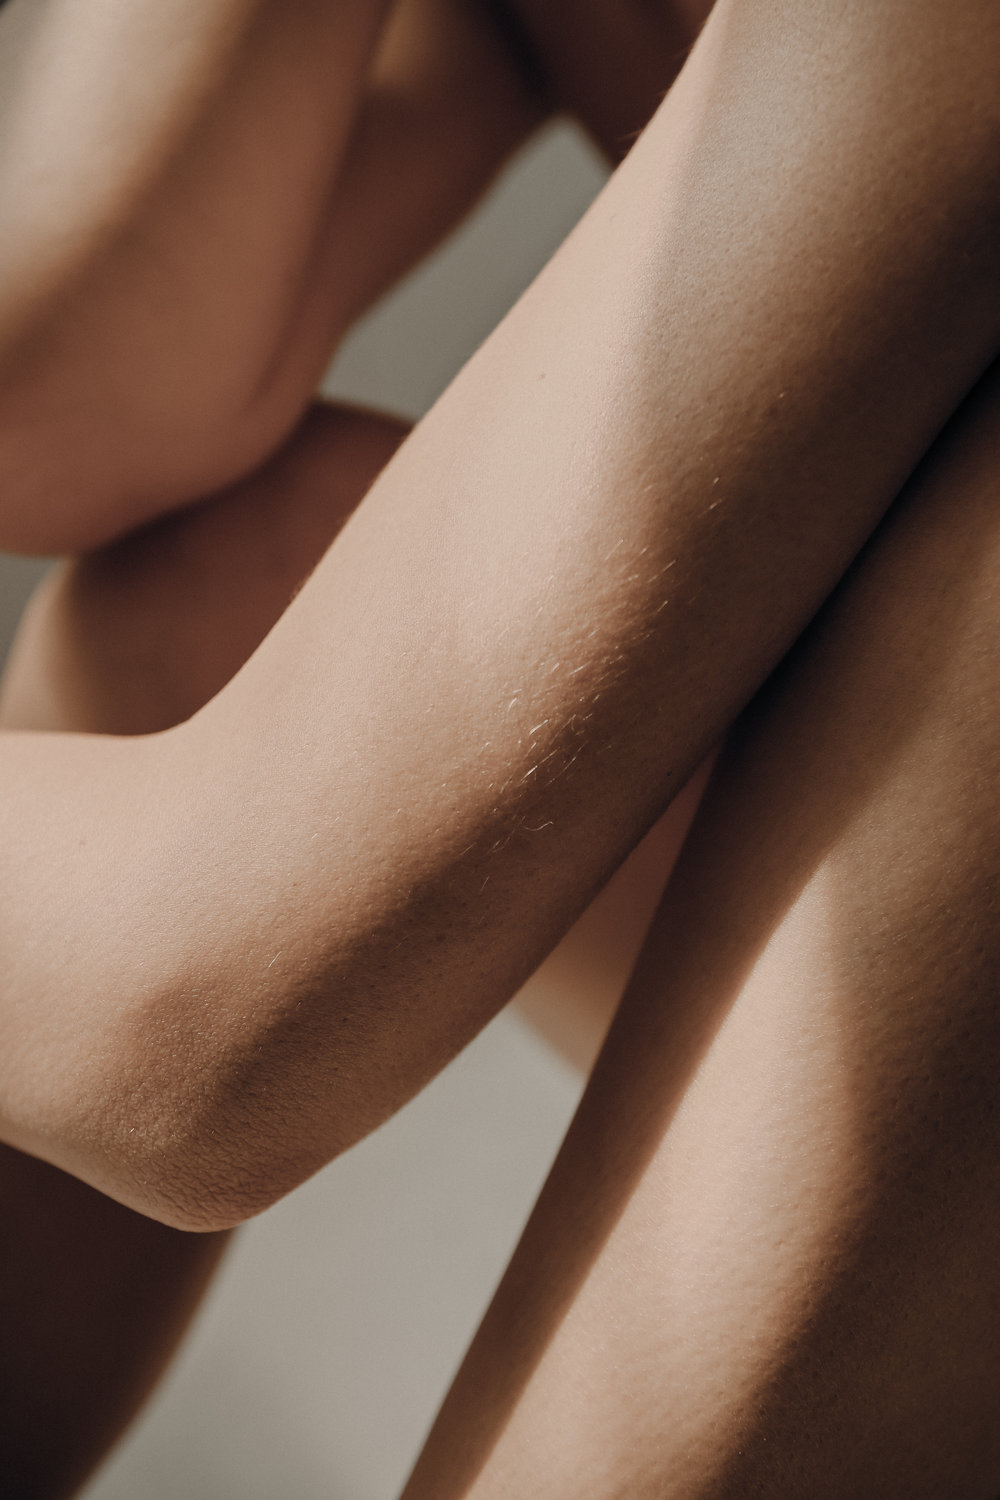 Woman's arms and legs skin